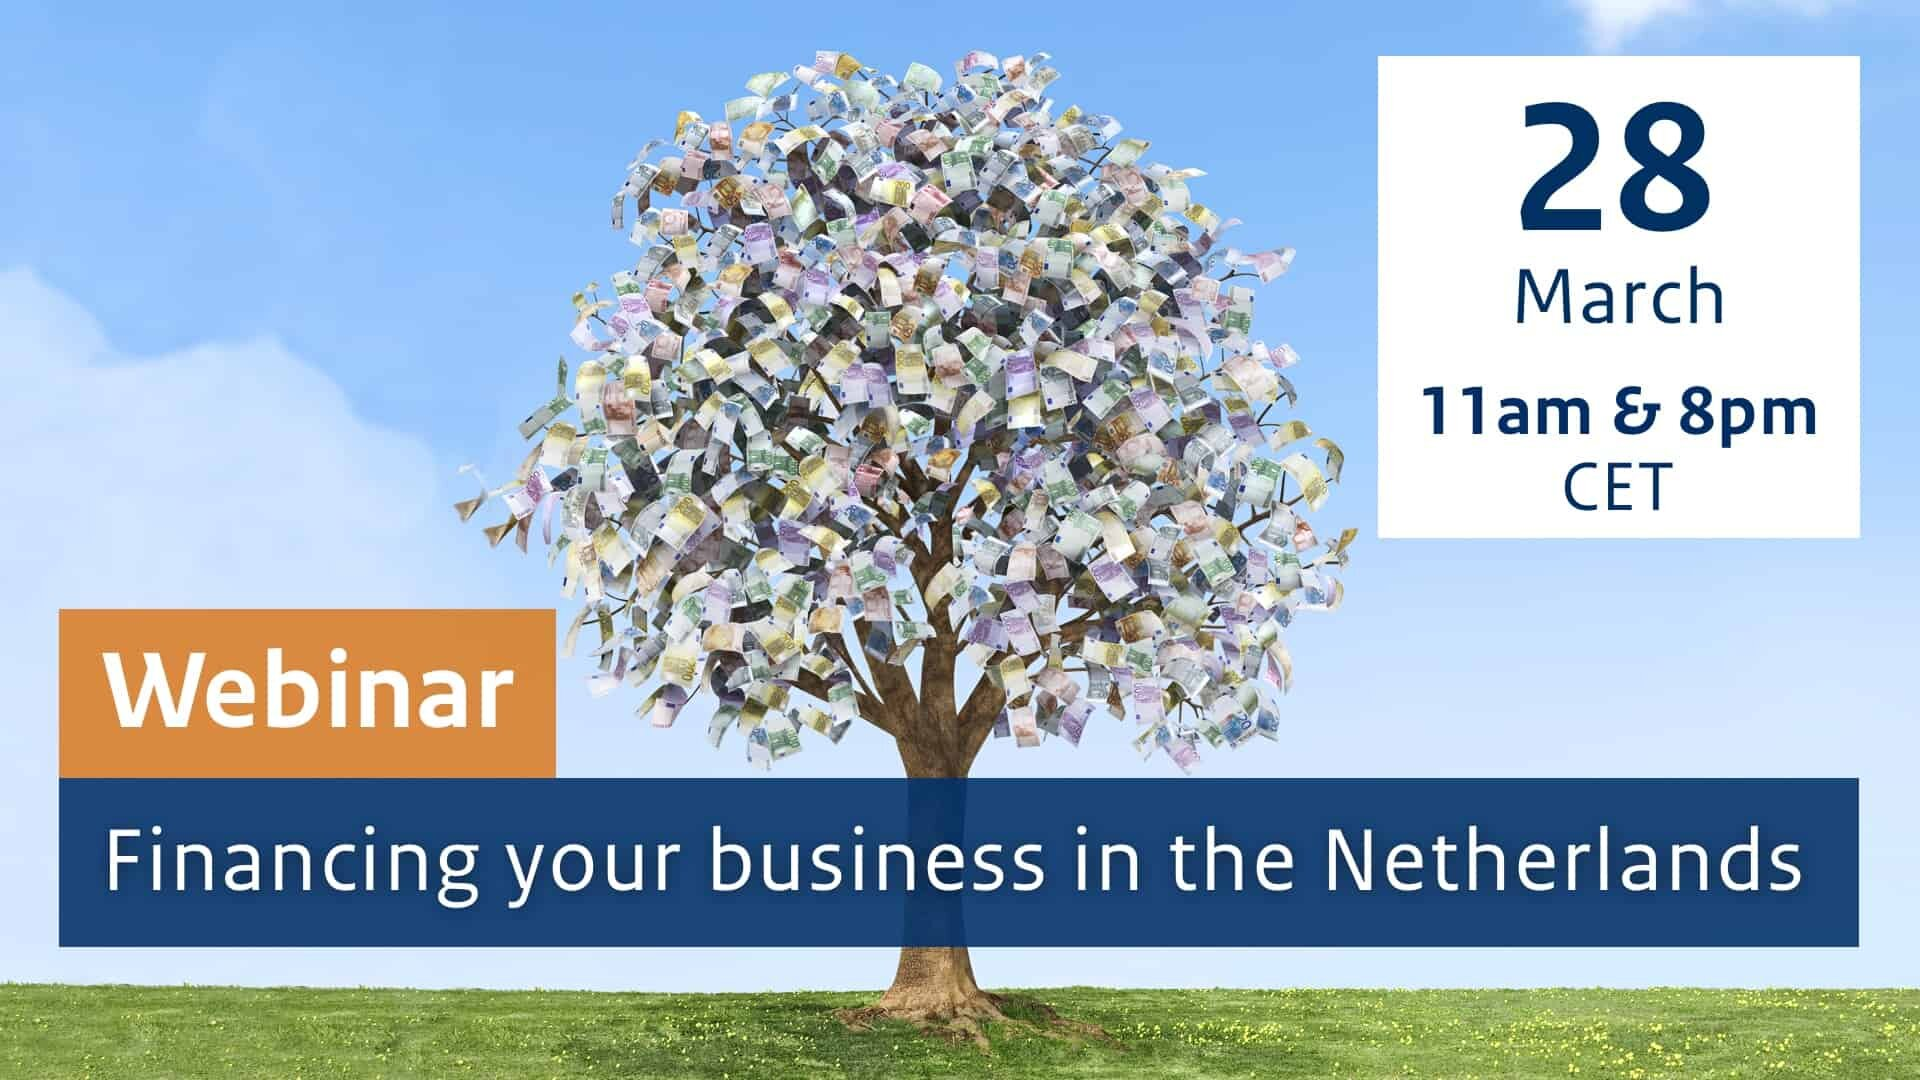 Webinar-Financing-your-business-in-the-Netherlands_1920x1080